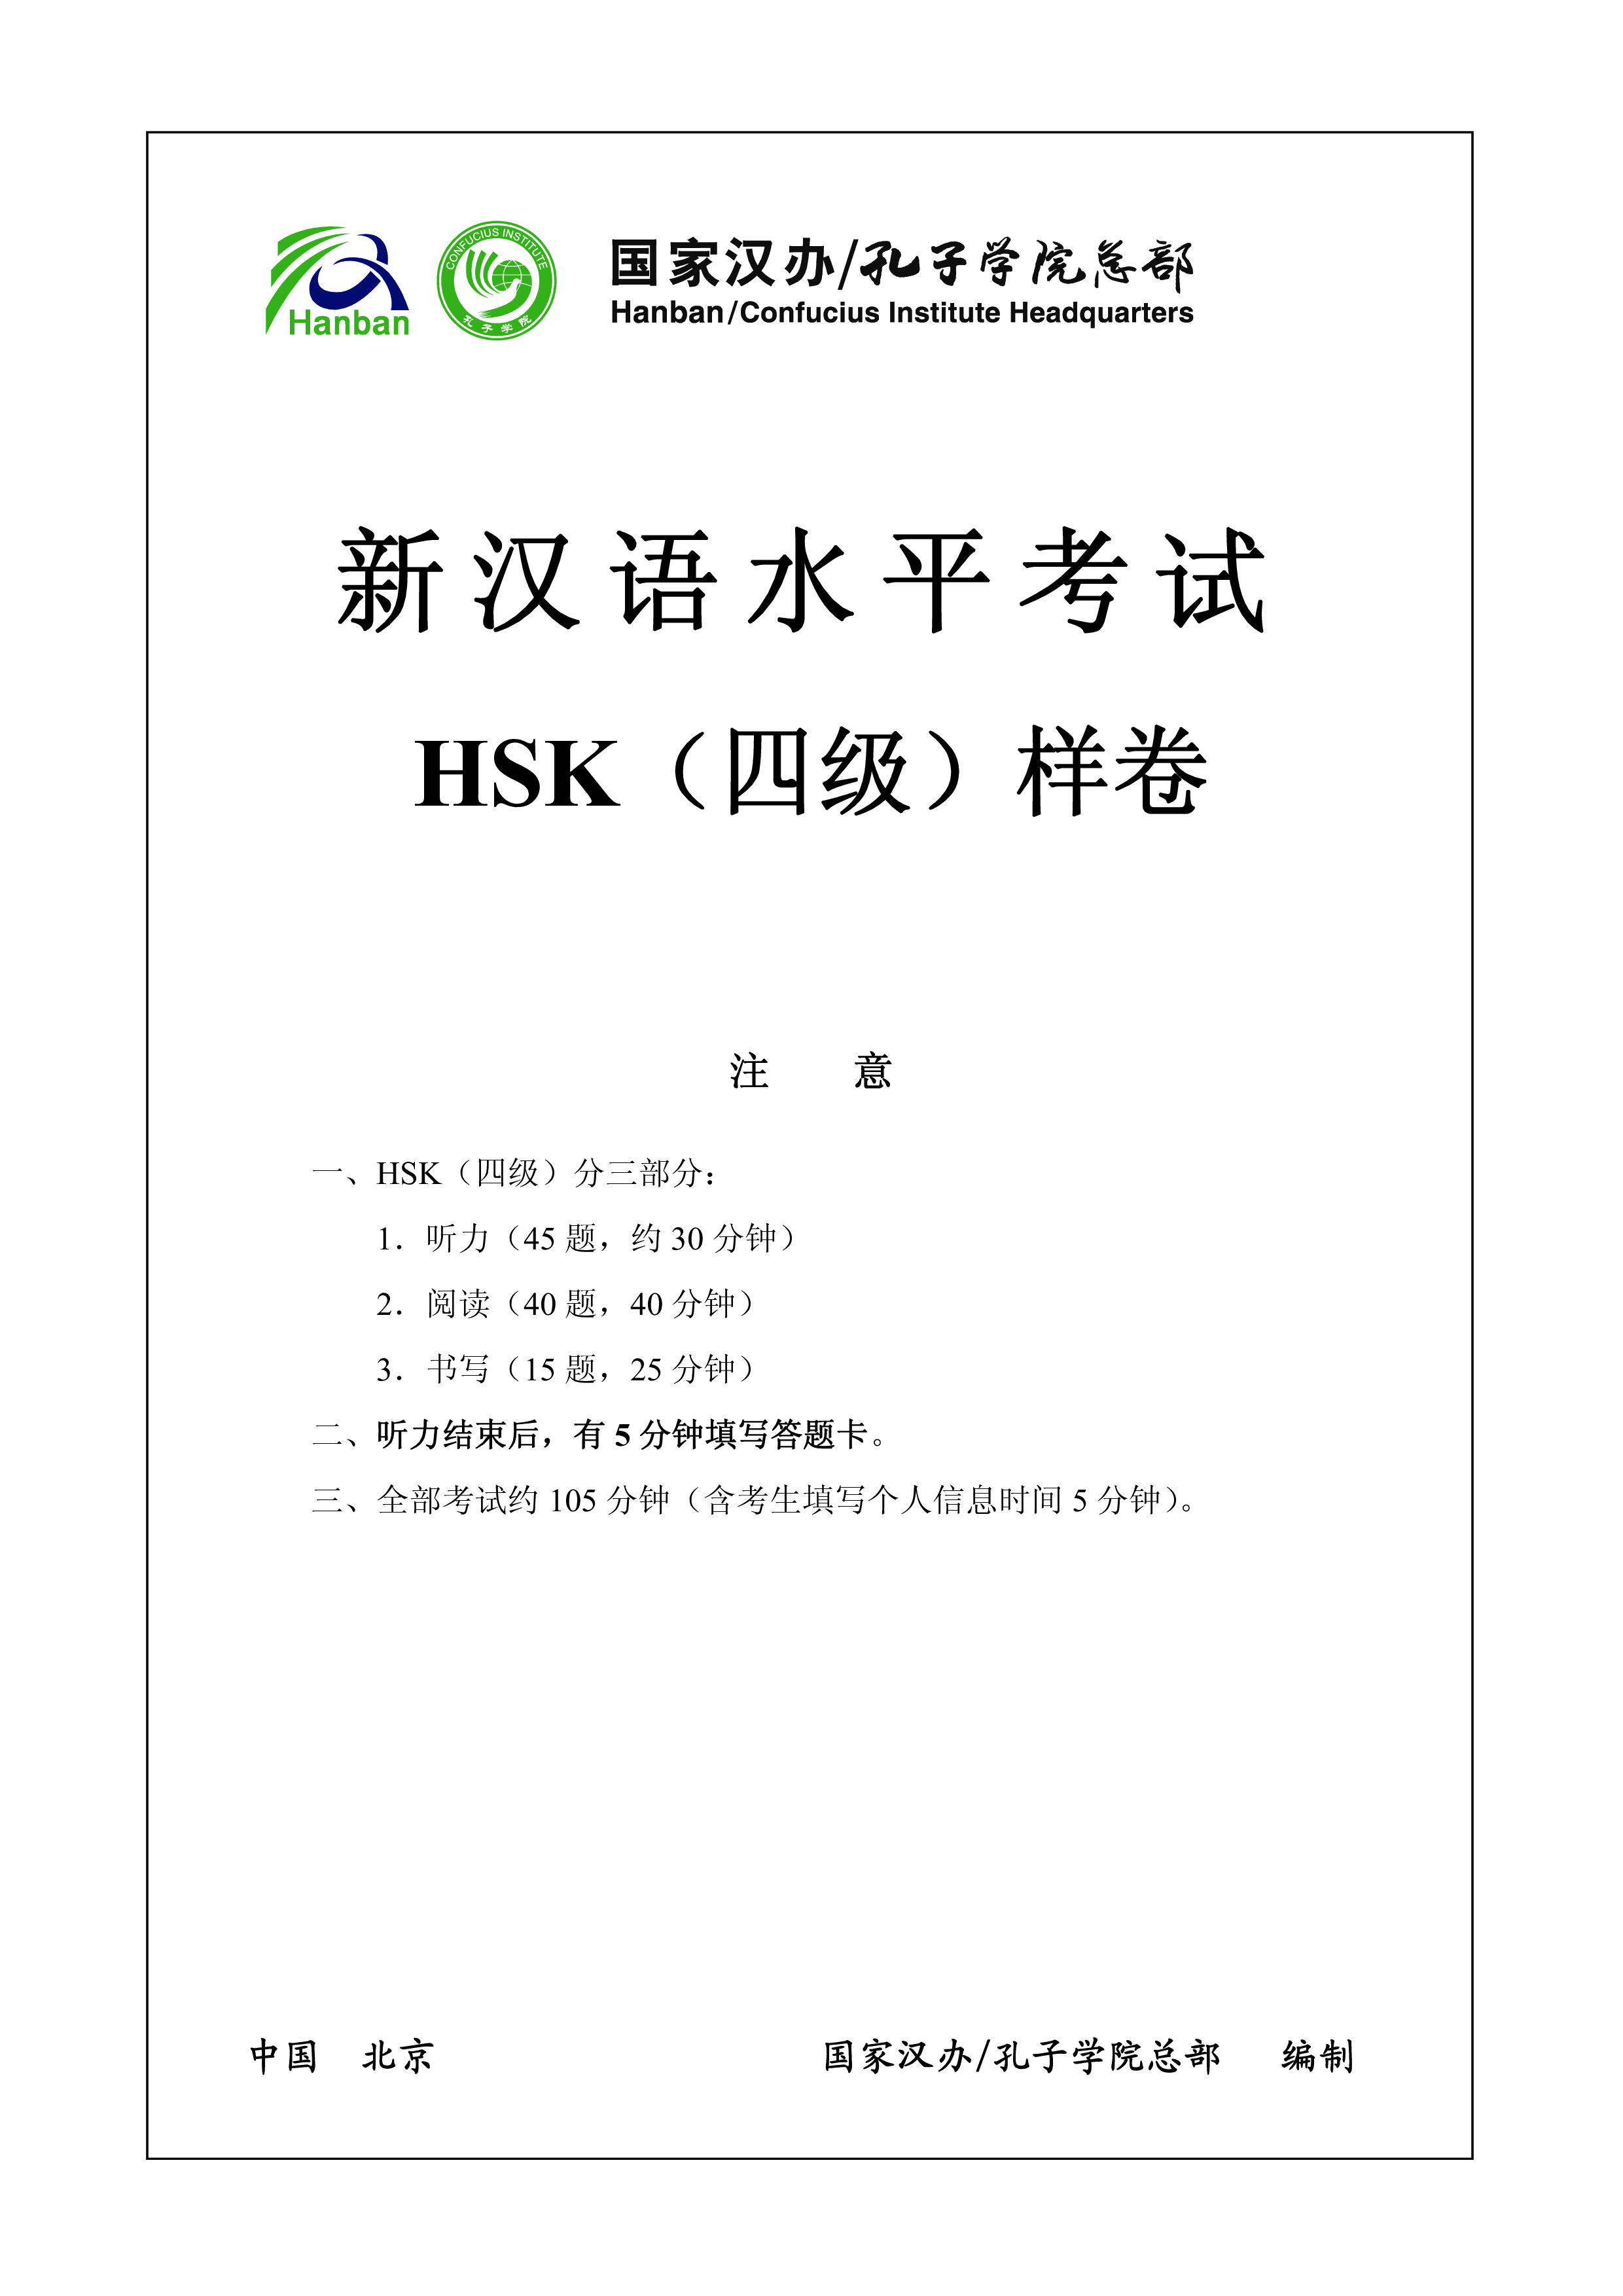 HSK4 Chinese Words Test Exam and Answers example 2 main image